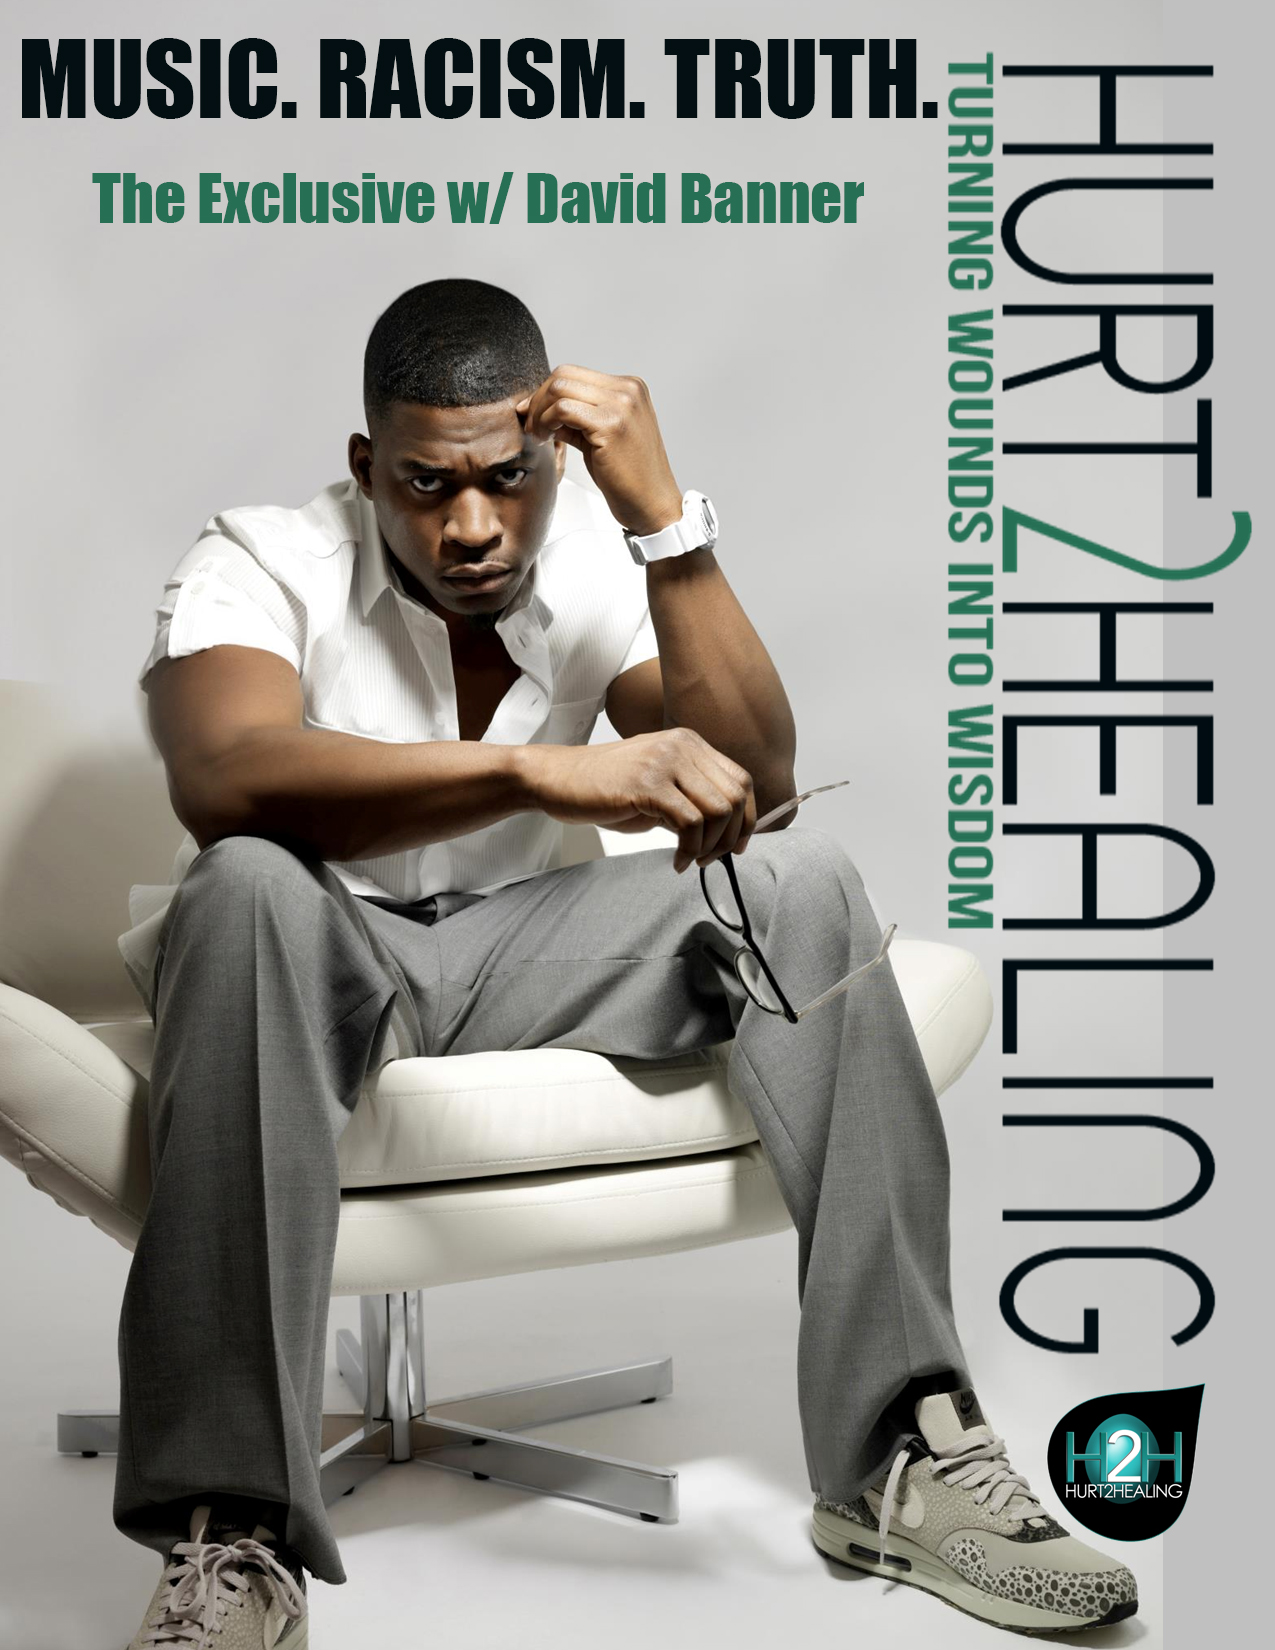 MUSIC. RACISM. TRUTH. – The Exclusive w/ David Banner